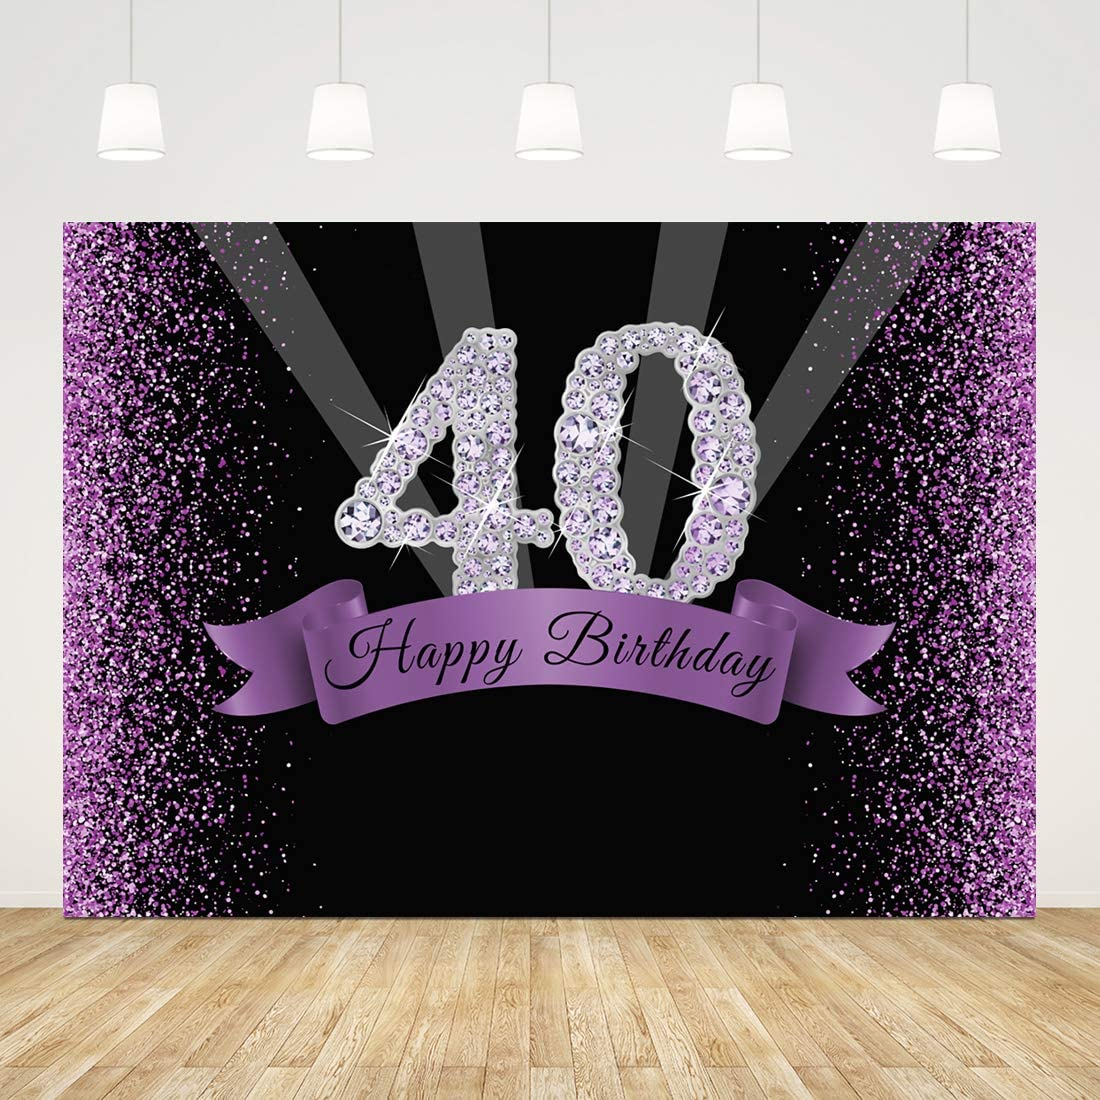 Happy 40th Birthday Backdrops for Photography Glitter 40 Birthday Photo Background 7x5ft Shiny Diamonds Black and Purple 40th Birthday Backdrop for Women Men Cake Table Banner Forty Photo Booth Props